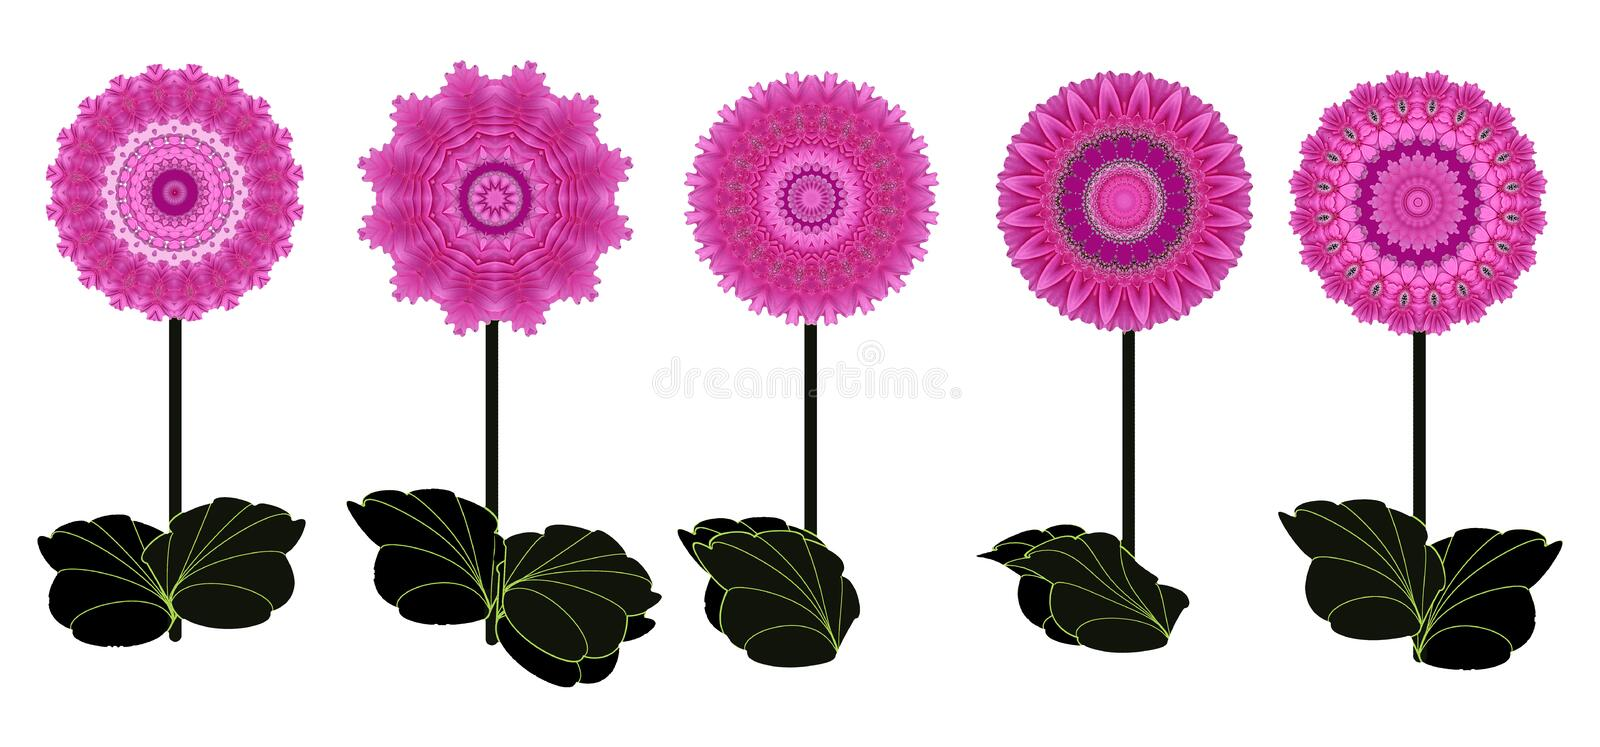 Border of five pink flowers on white royalty free illustration